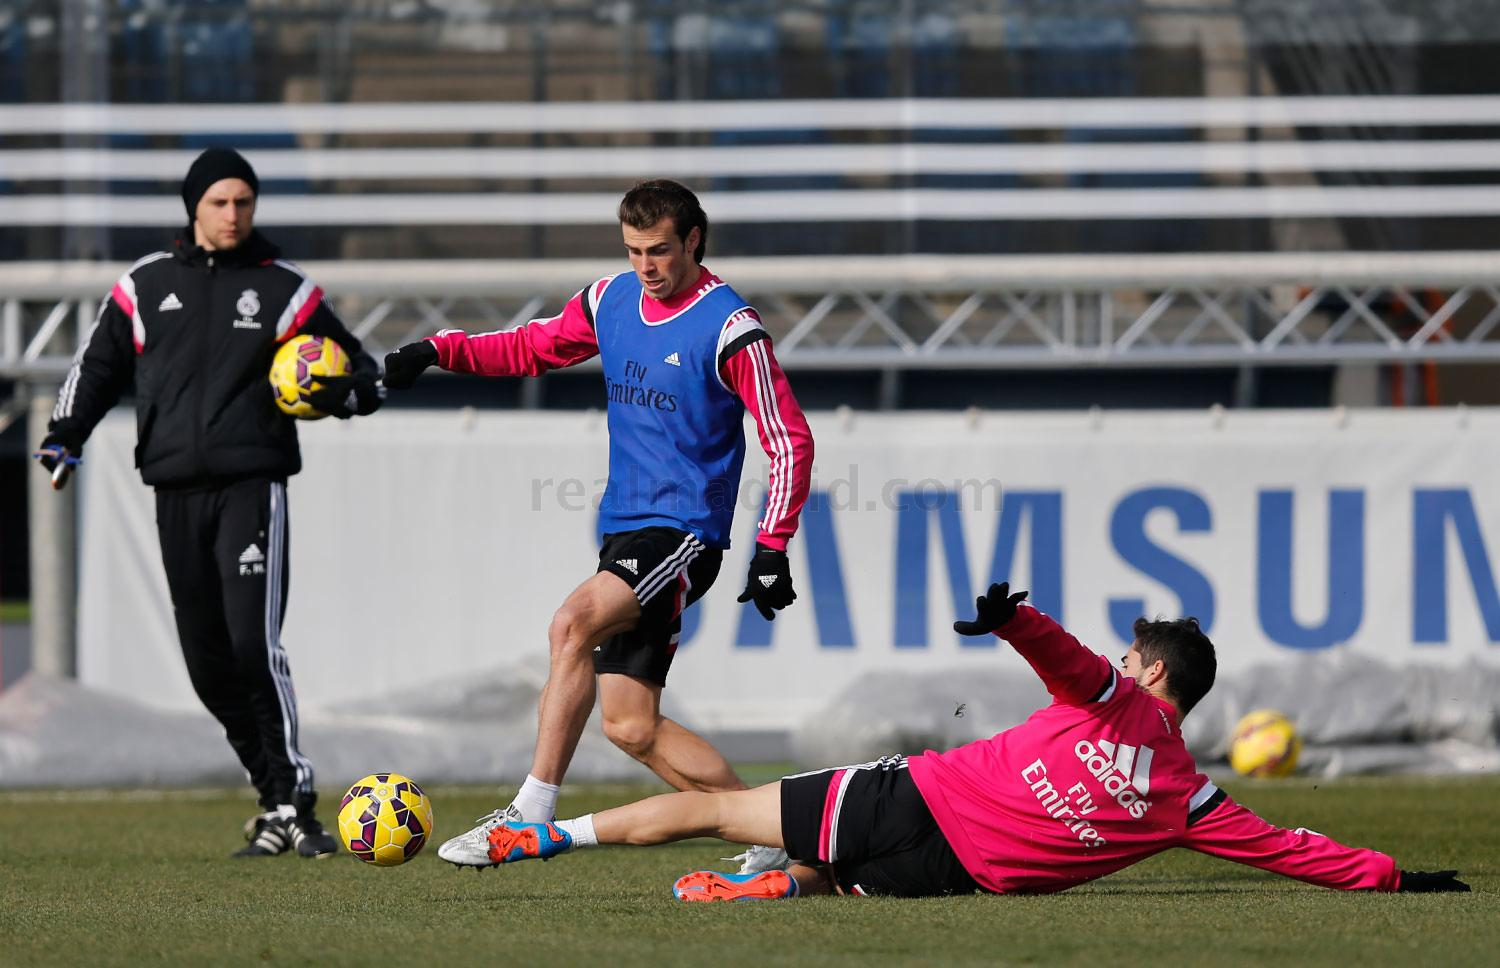 Real Madrid - Entrenamiento del Real Madrid - 13-02-2015